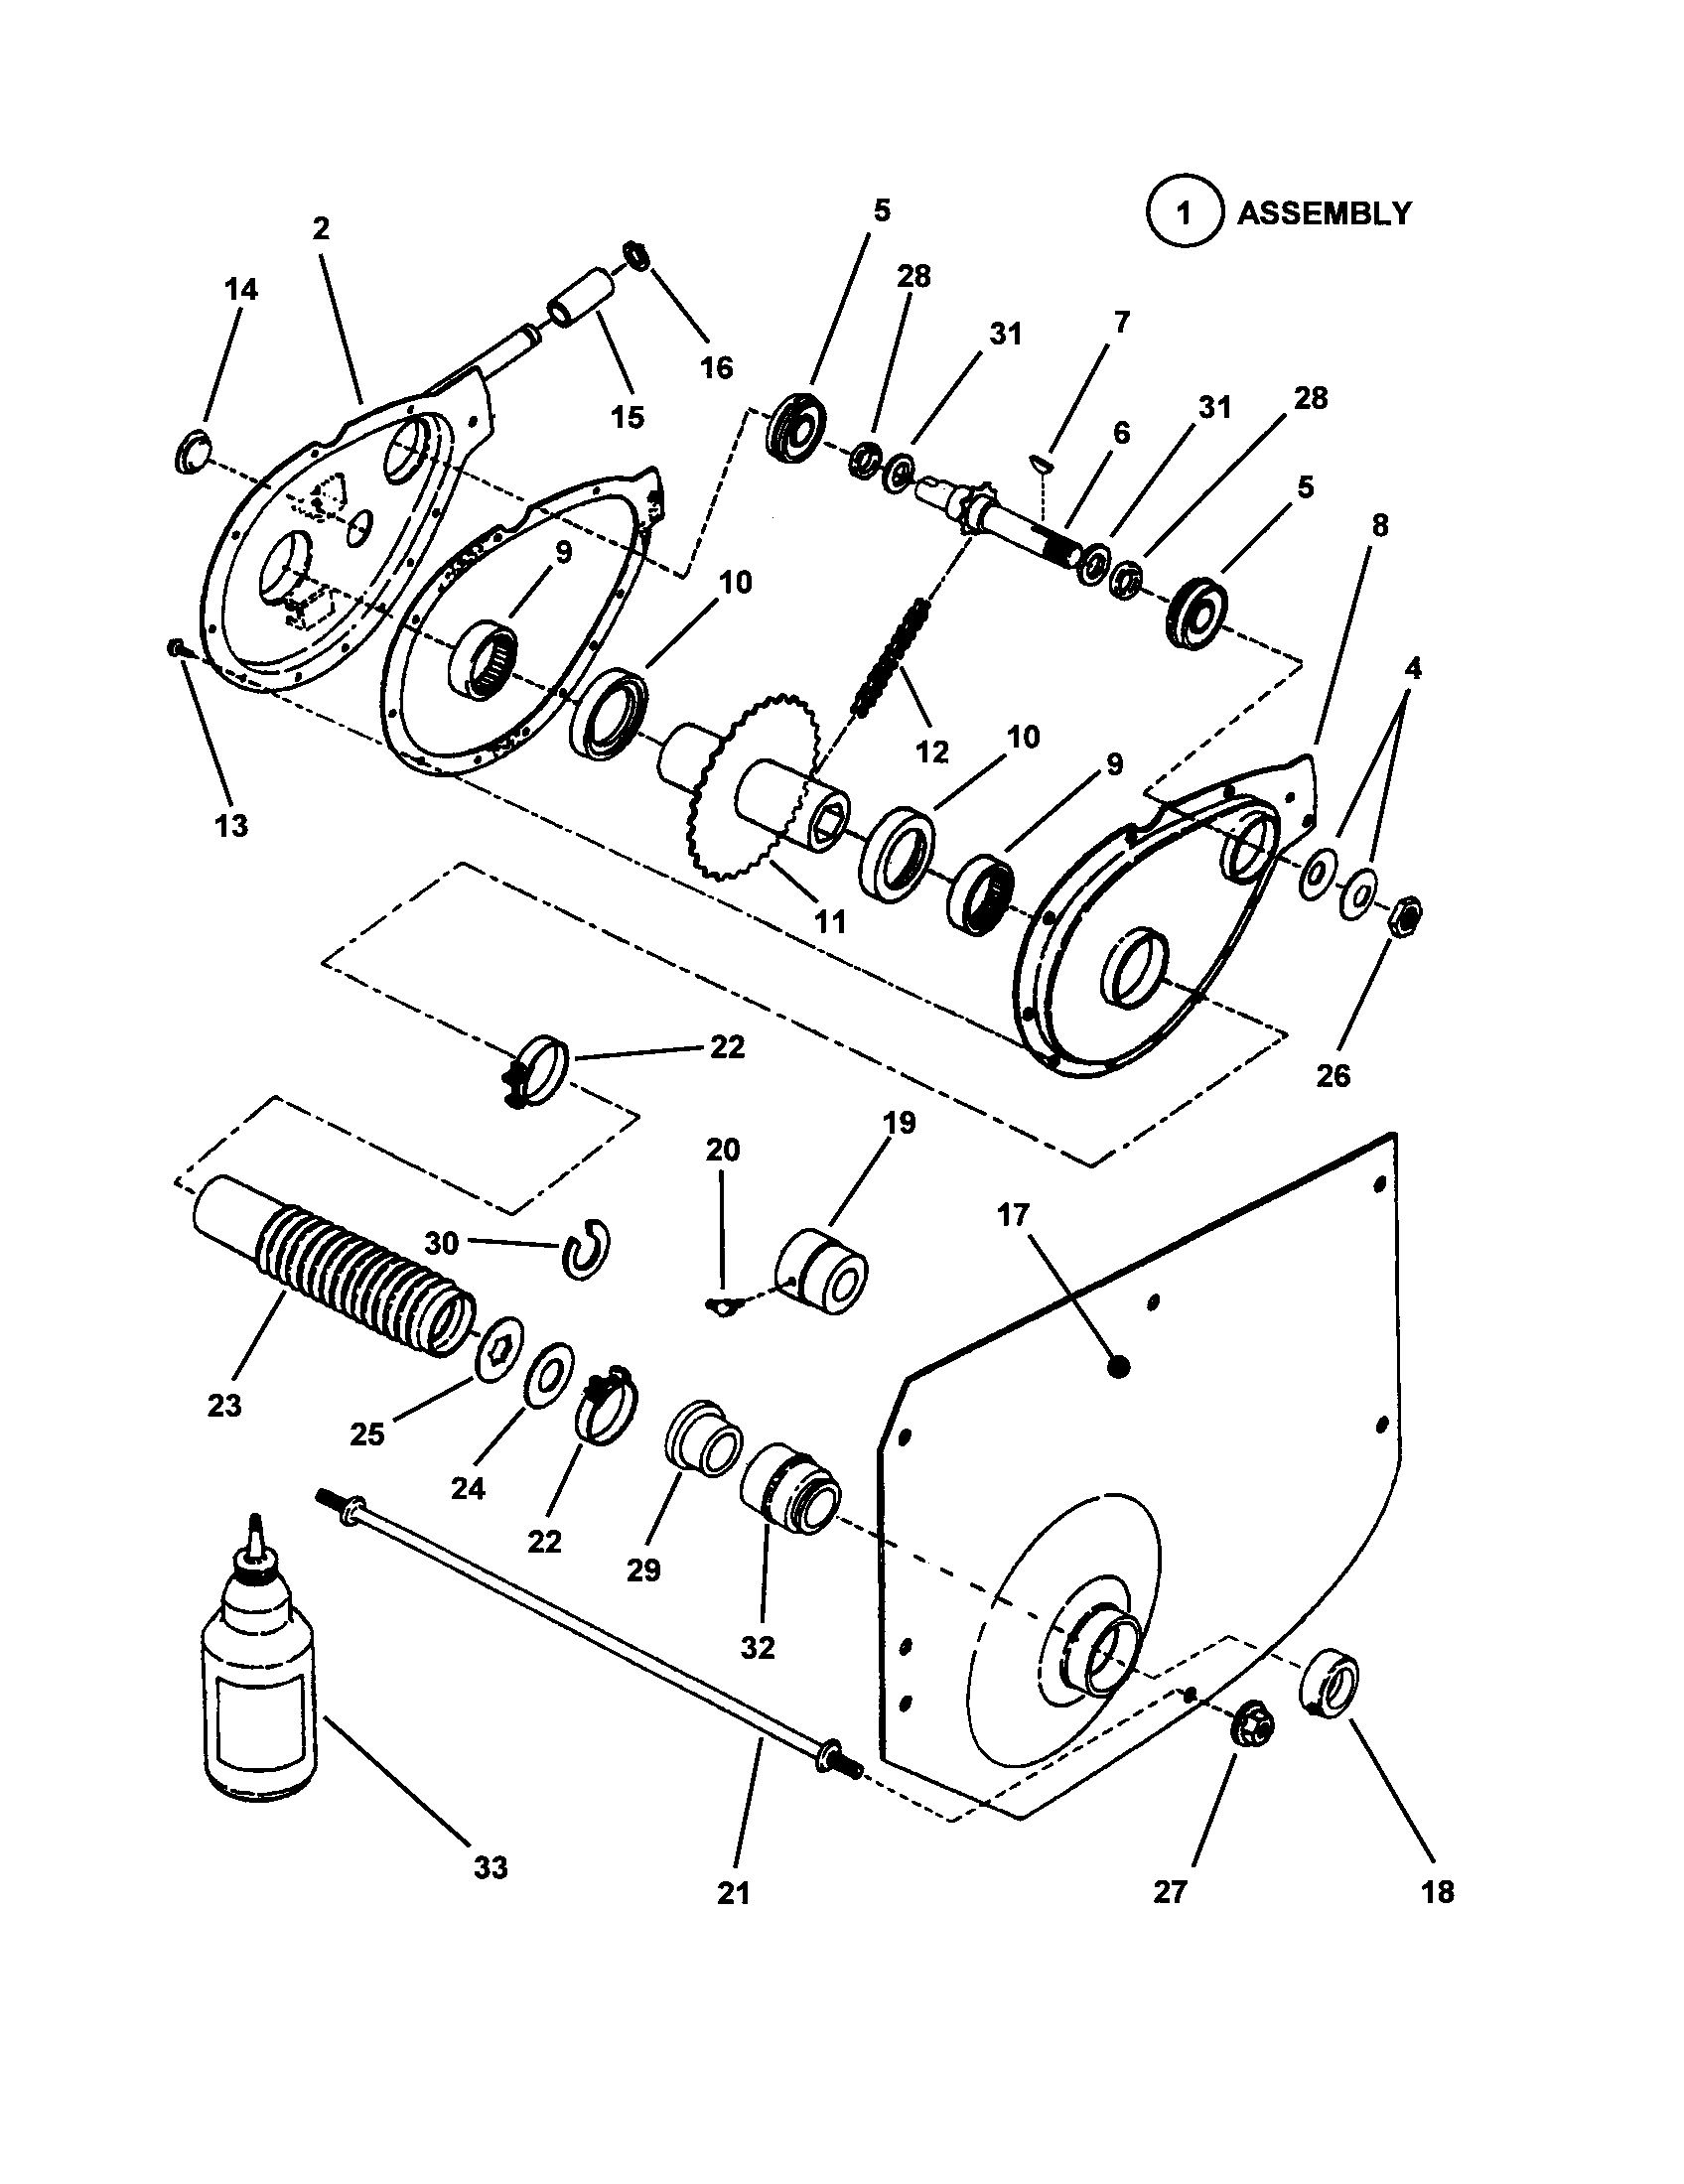 hight resolution of lawn mower engine wiring diagram in addition 1503500 further snapper rear engine riding mower series 23